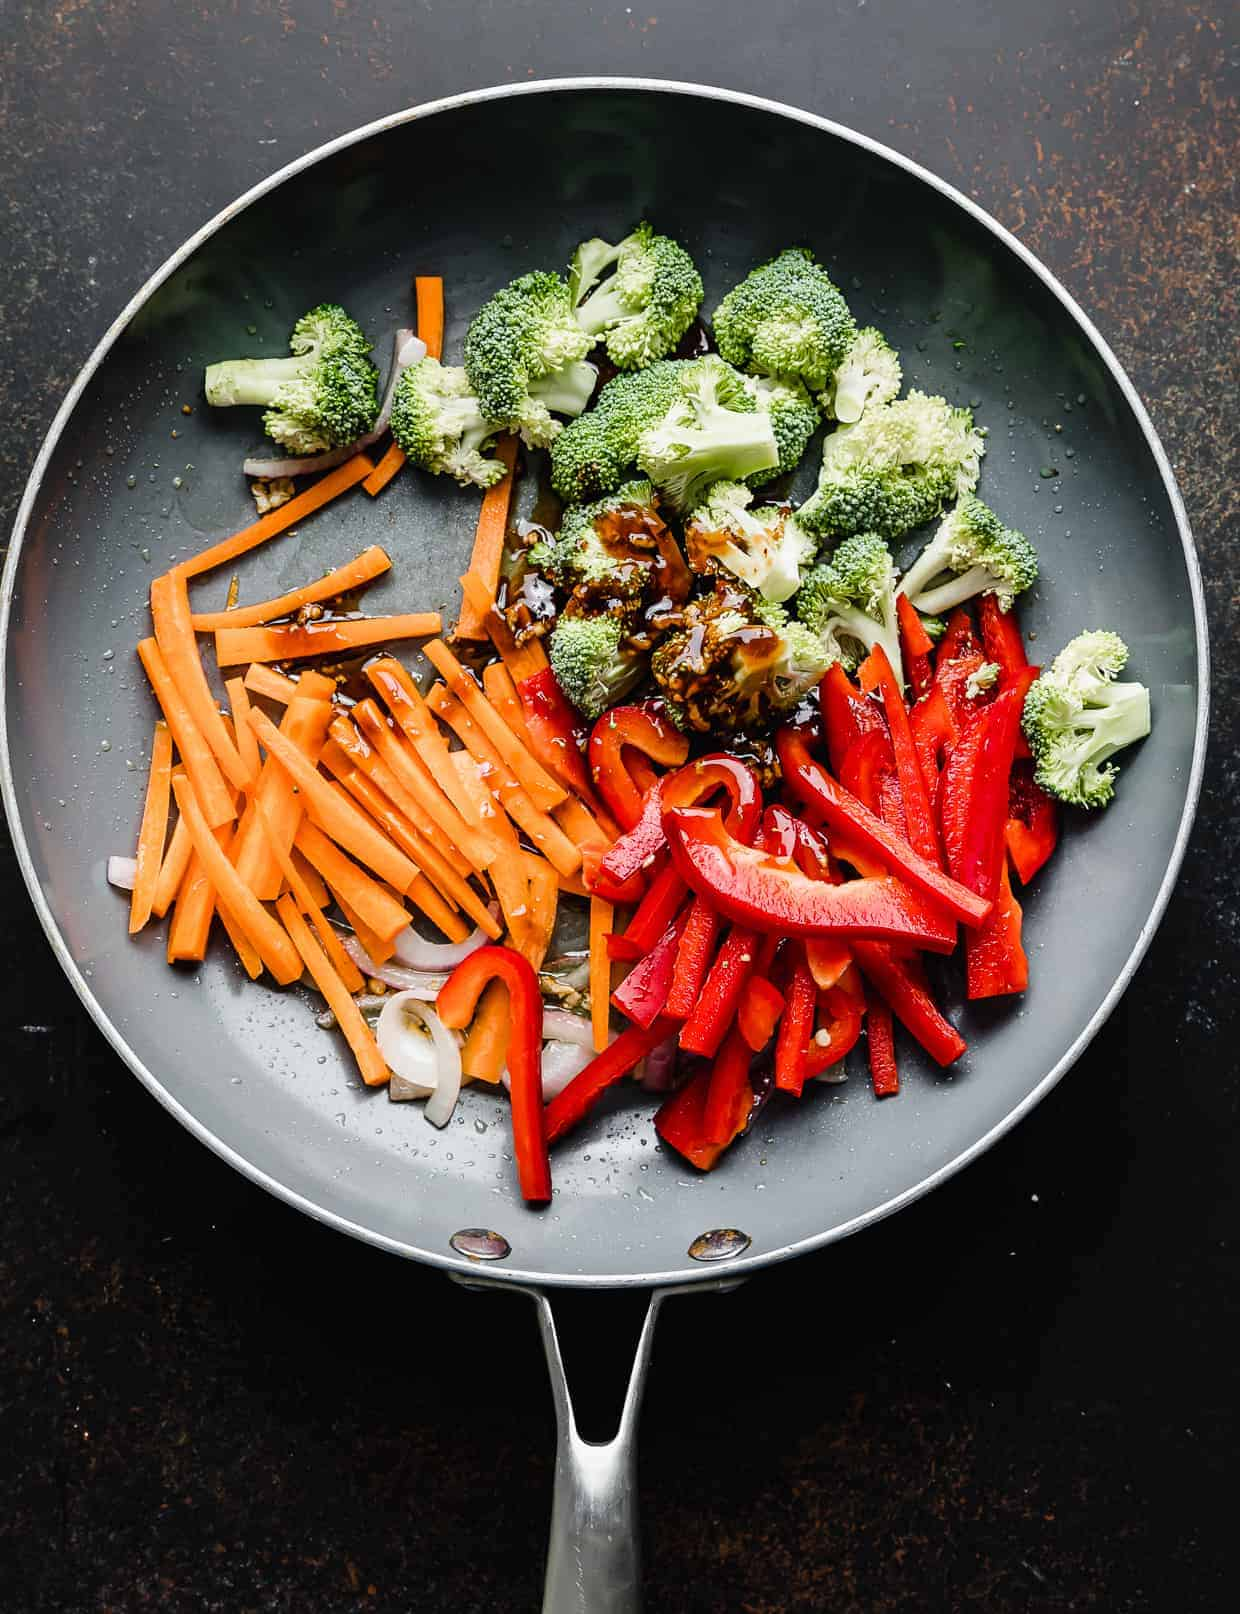 A skillet with red peppers, broccoli, carrots, and a brown sauce in it.